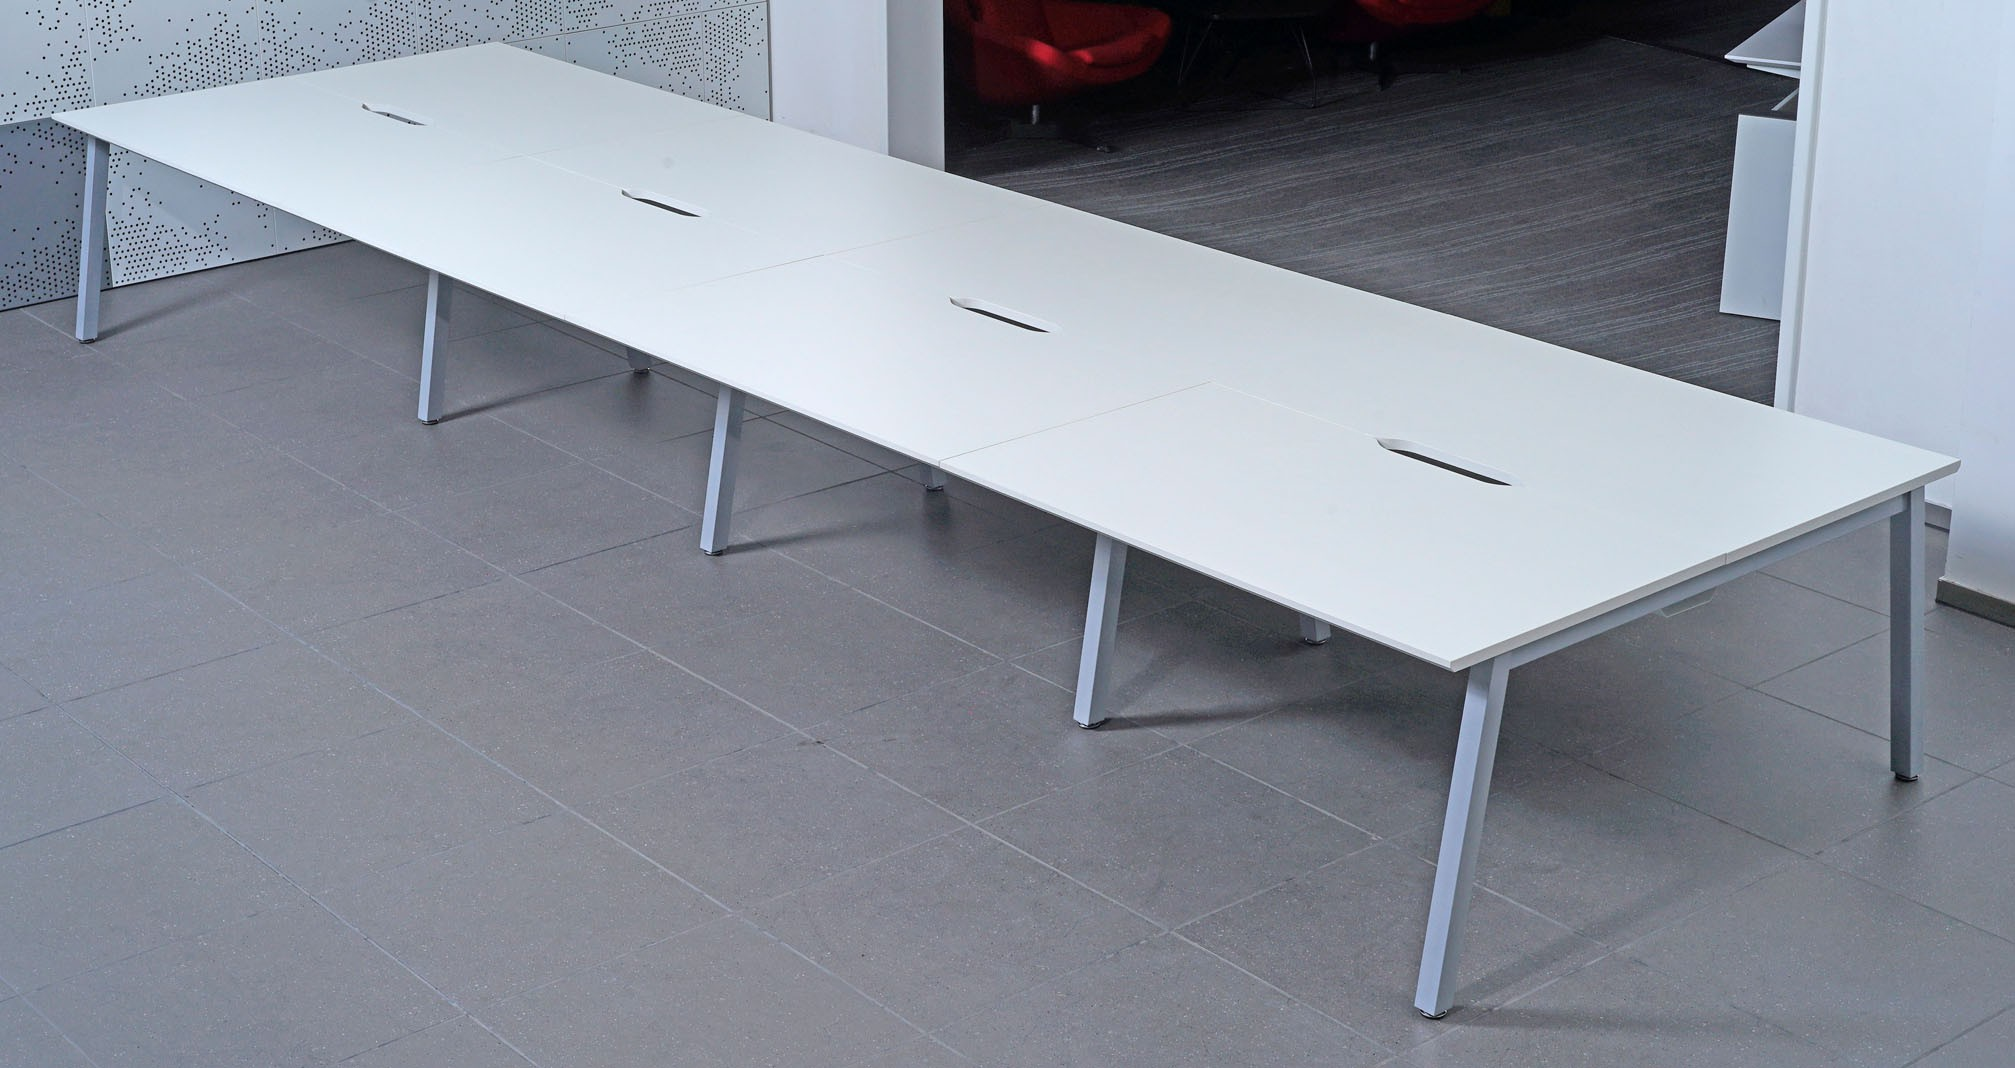 Bench 1600mm Back to Back Desk Add-on (WxDxH) 1600x800x730mm (White Tops, Leg Colour must be specified)